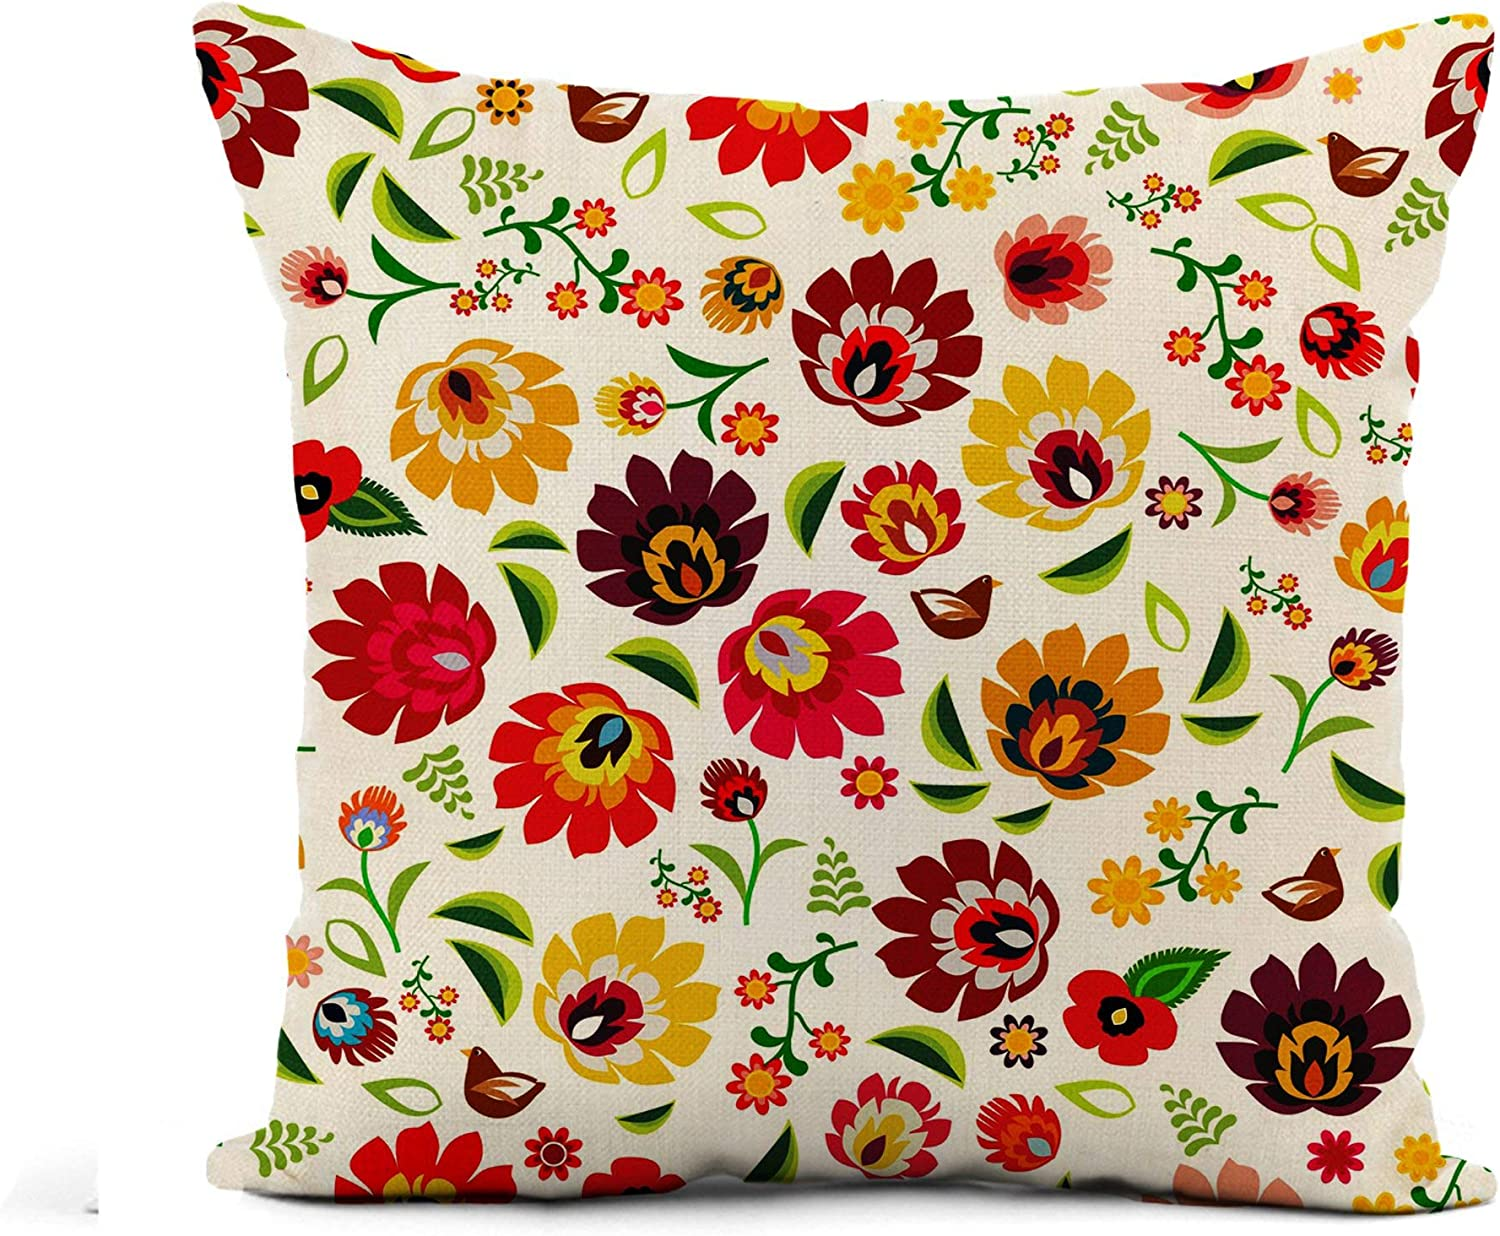 Awowee Flax Throw Pillow Cover Colorful Hungarian Traditional Polish Folk Floral Pattern Green Flower 16x16 Inches Pillowcase Home Decor Square Cotton Linen Pillow Case Cushion Cover